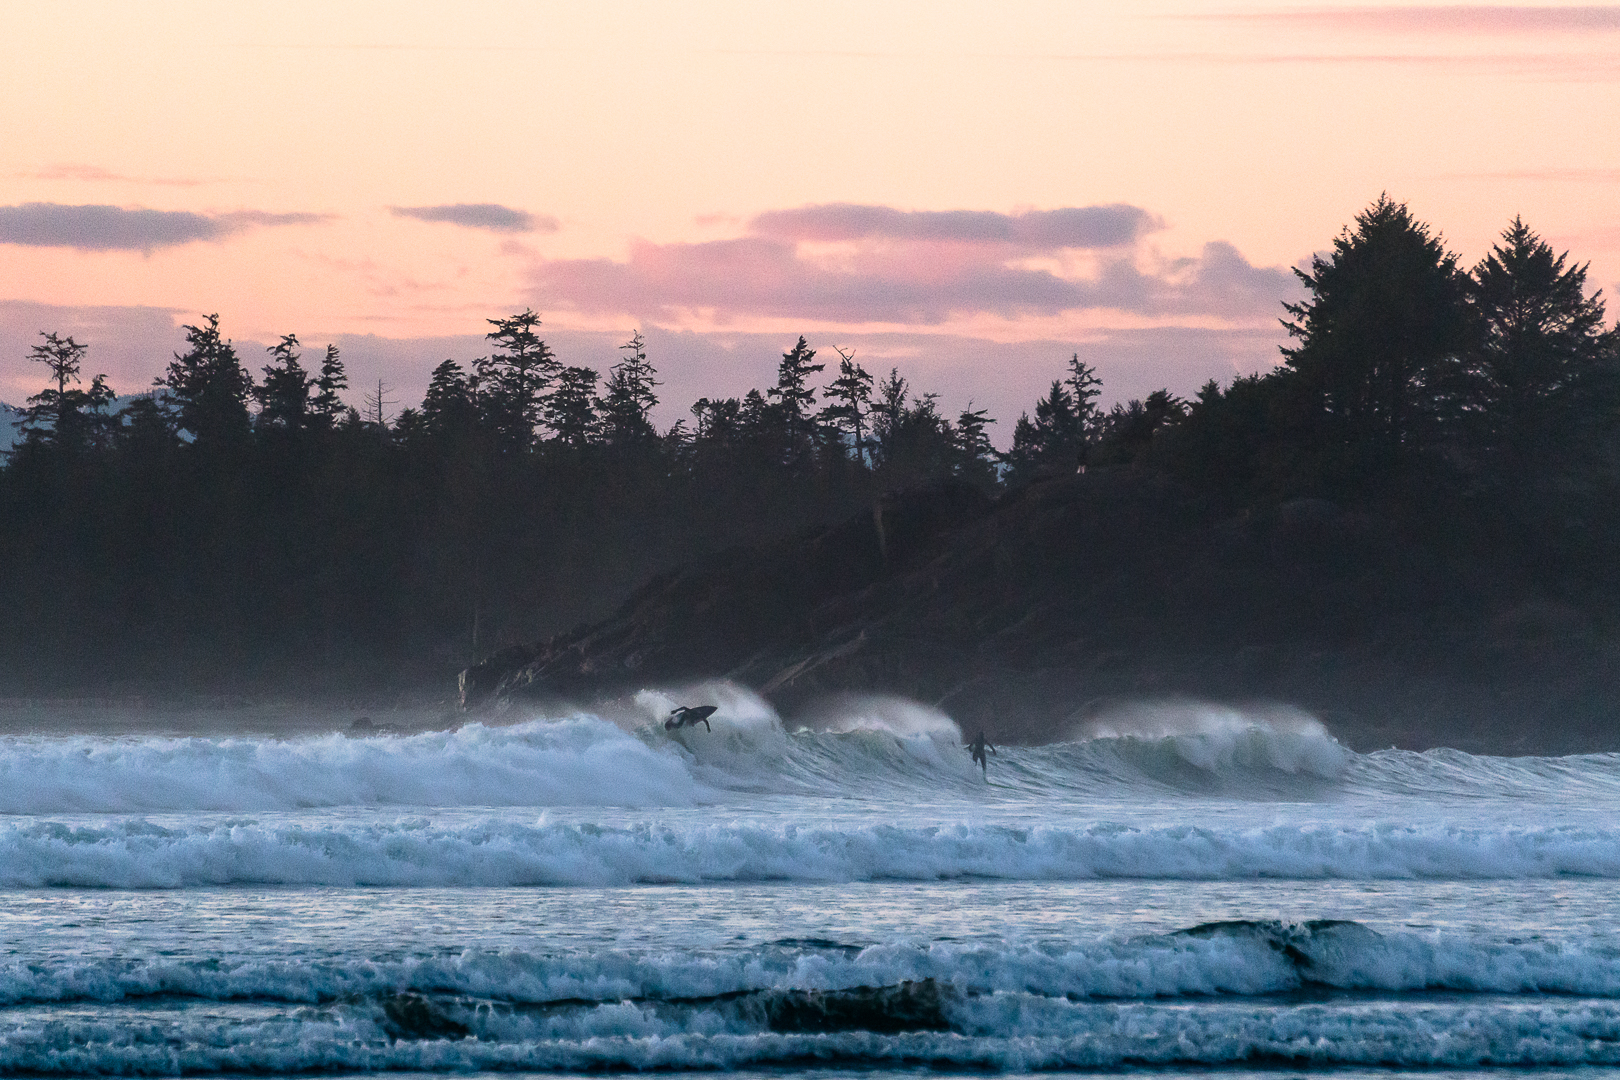 Coldwater surfing, Cox Bay, Tofino, British Columbia